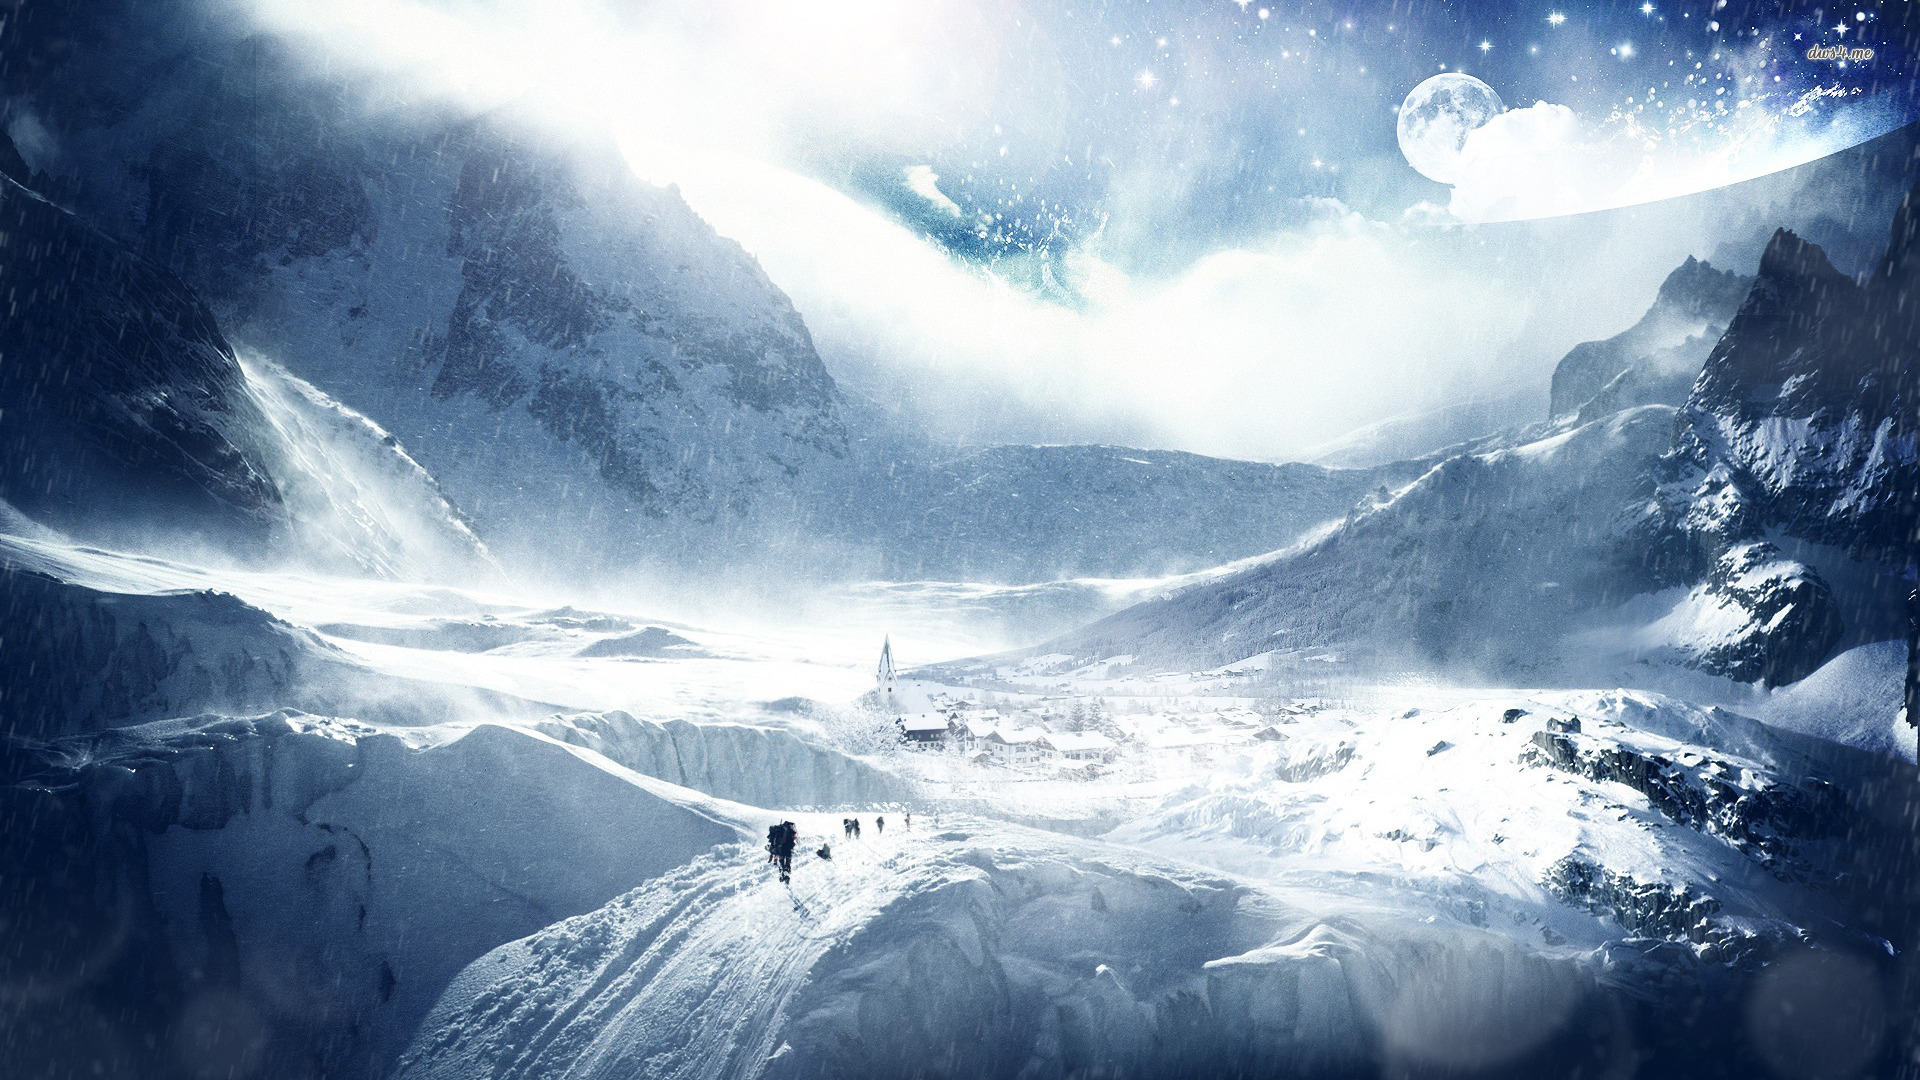 Wide HDQ Snow Blizzard Wallpapers Snow Blizzard Wallpaper 1920x1080